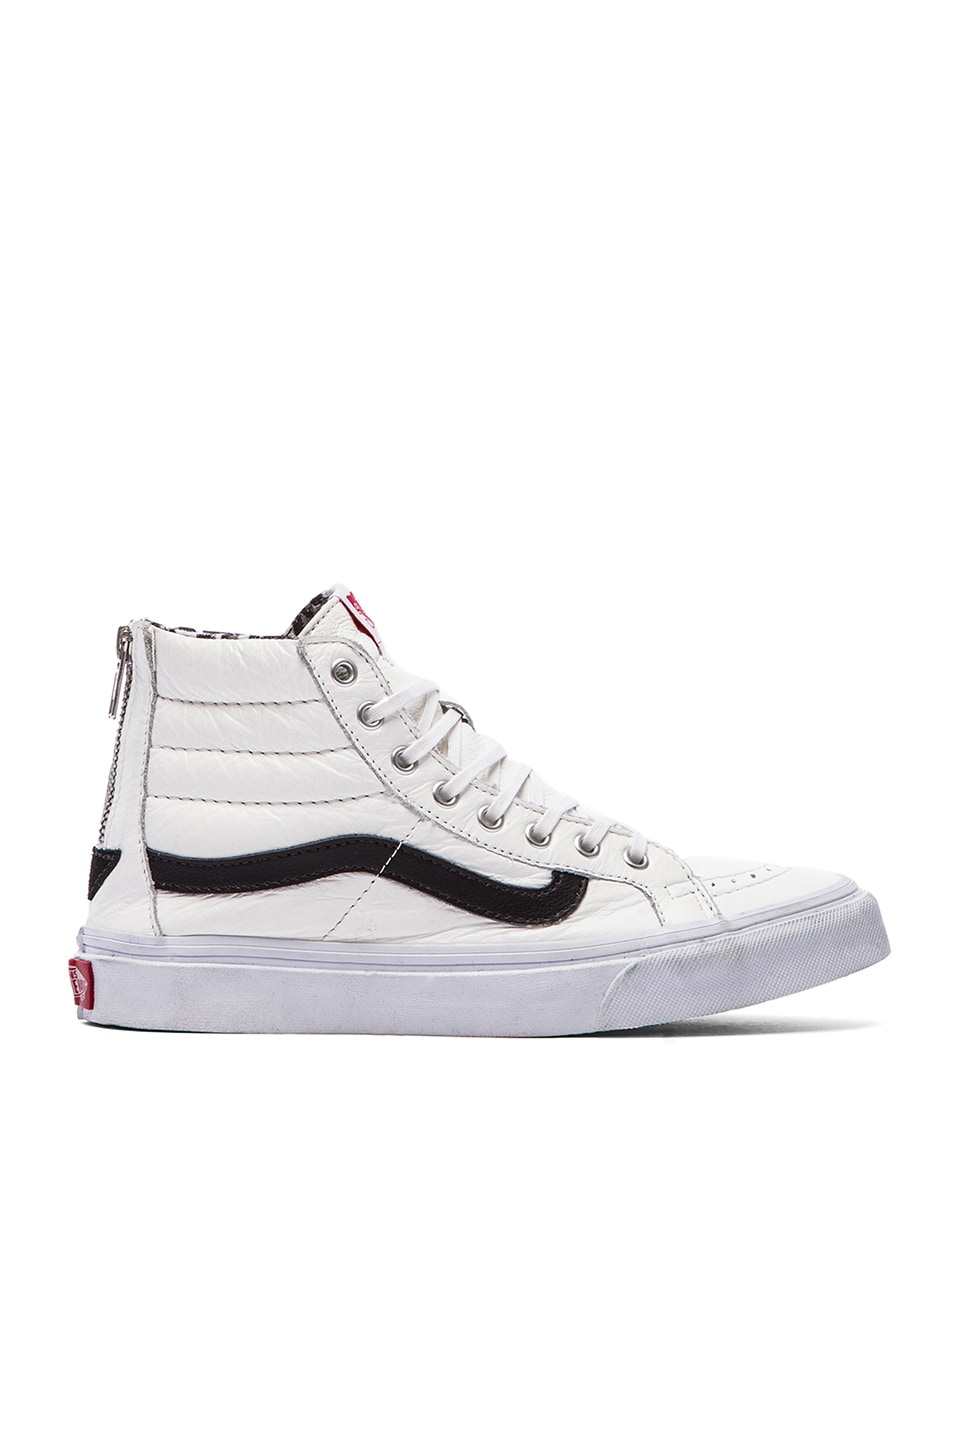 Vans SK8-HI Slim Zip Sneaker in True White & Snow Leopard